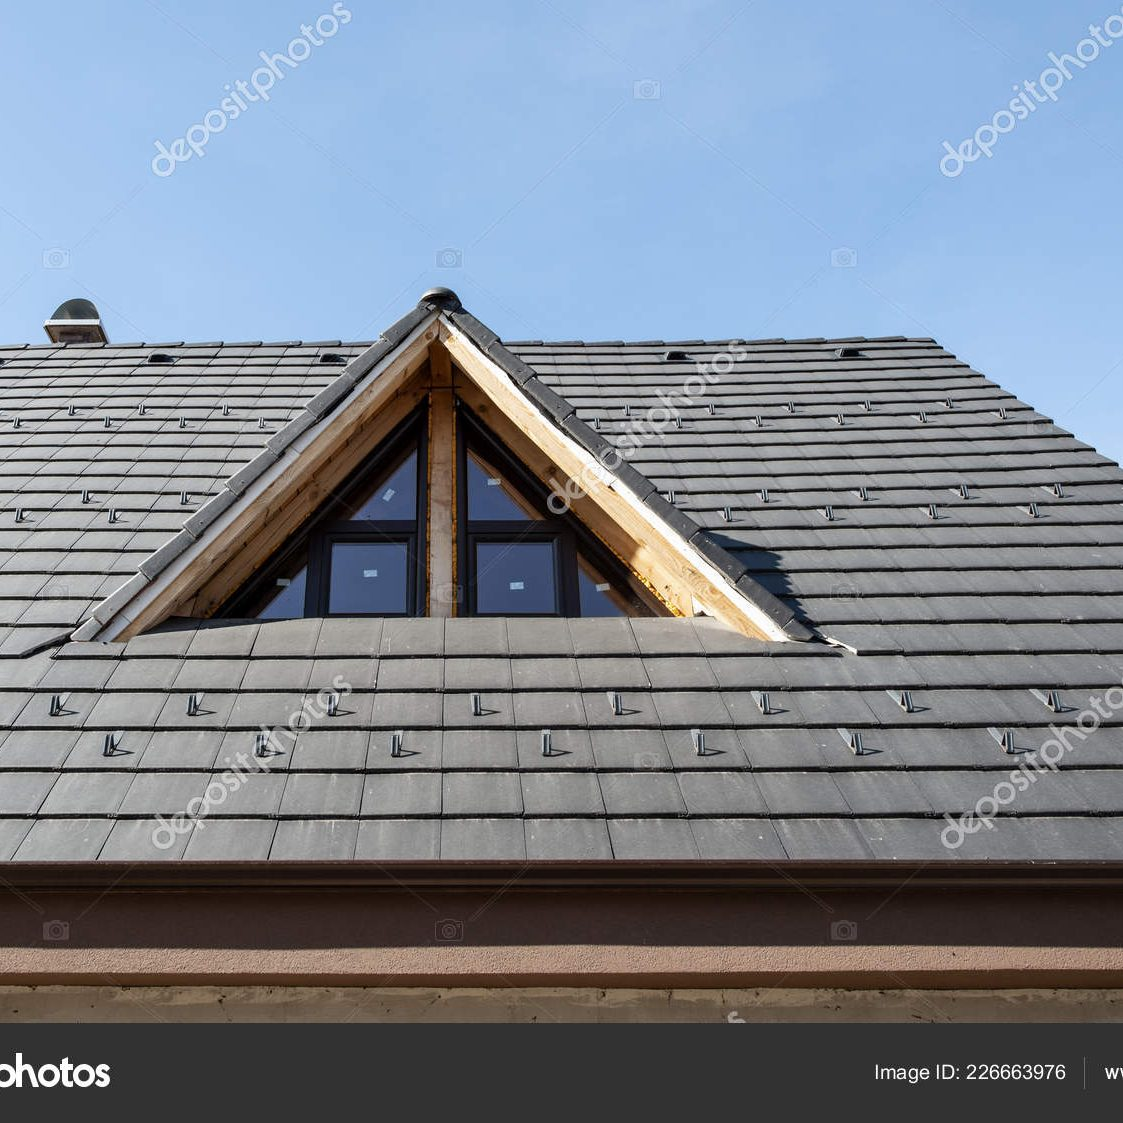 New House roof. Building a house